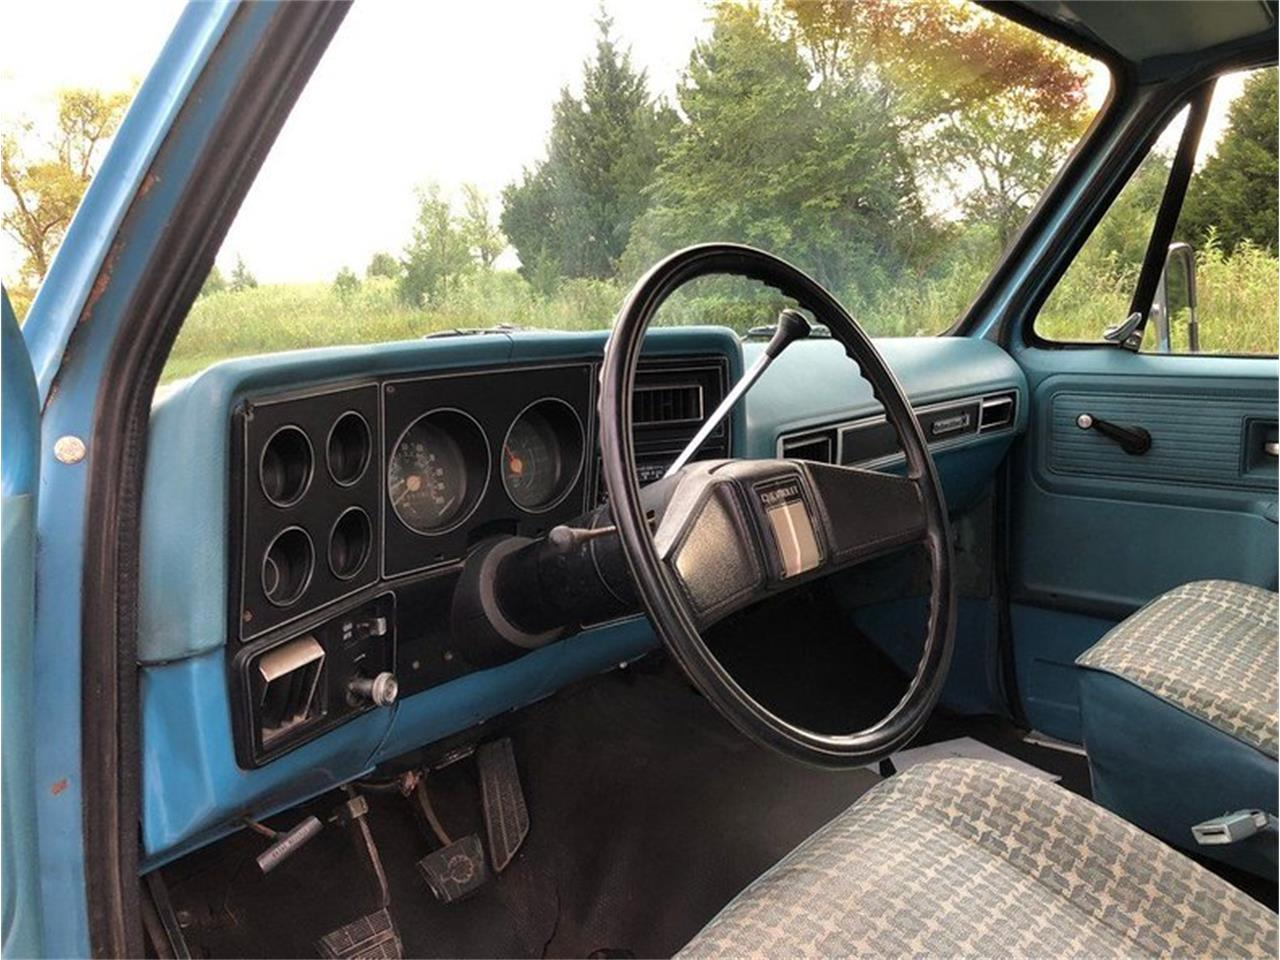 1979 Chevrolet Blazer for sale in Lincoln, NE – photo 22